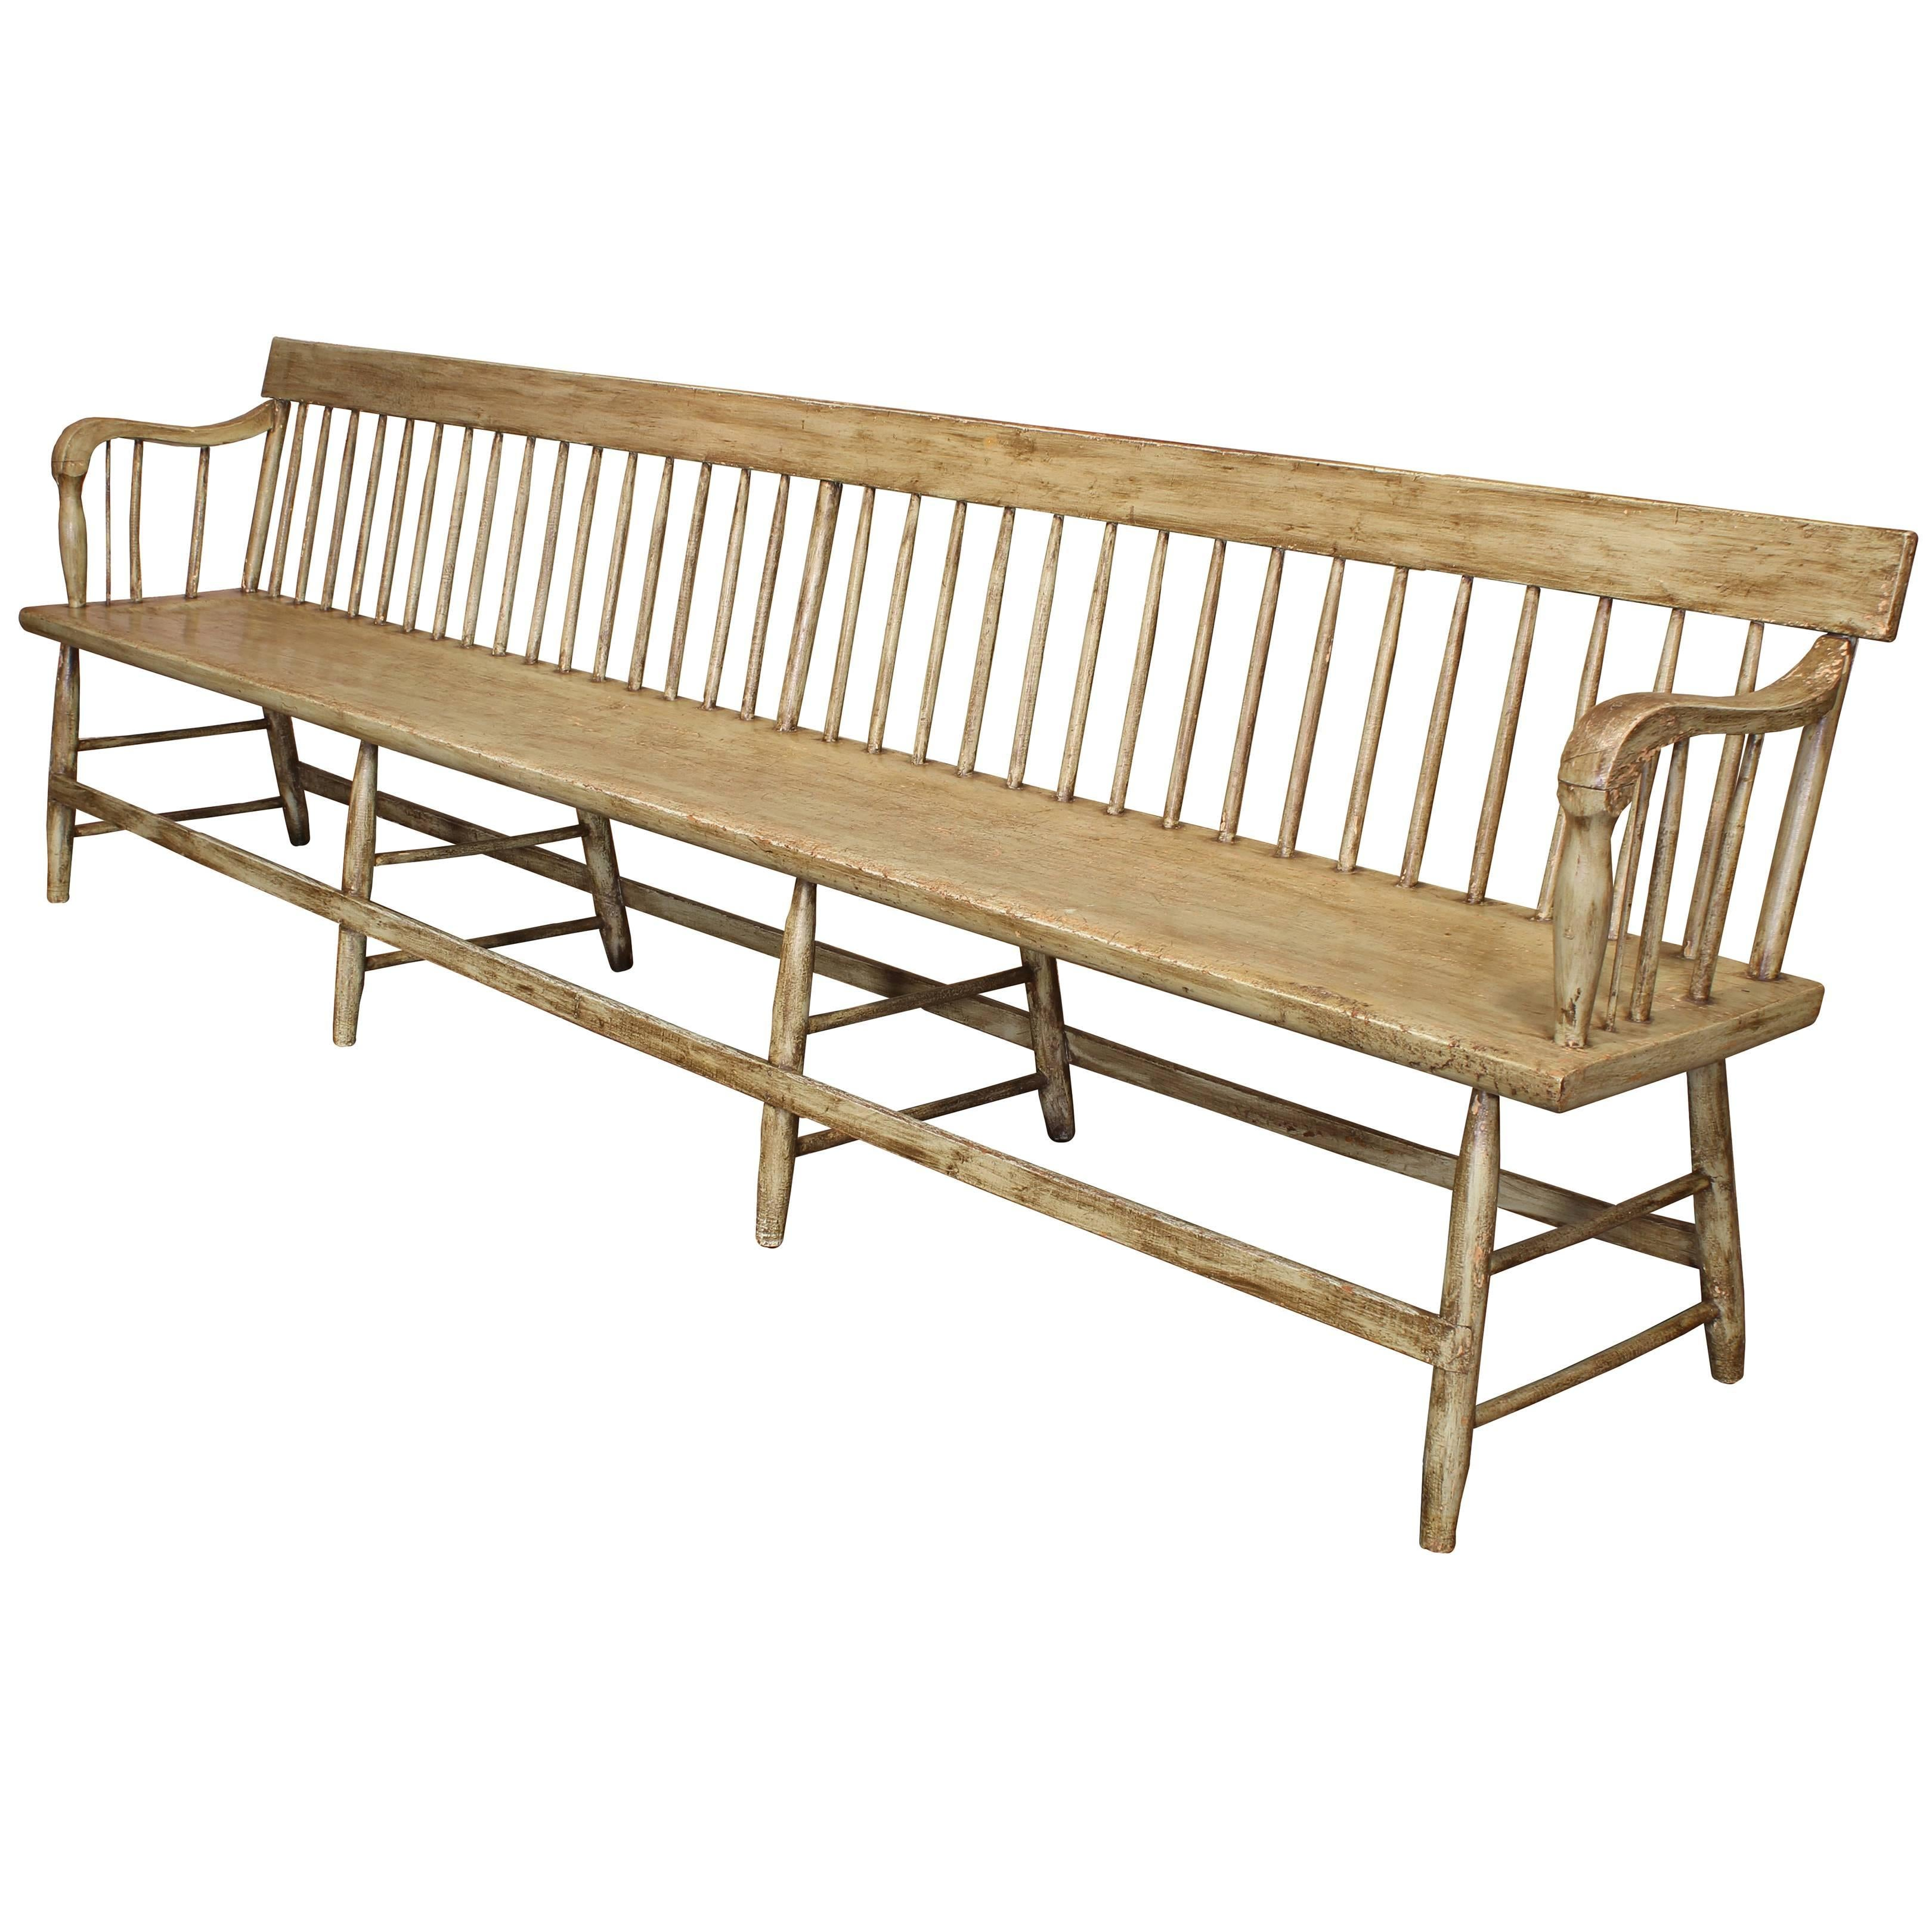 product white overstock free today safavieh distressed home storage shipping bench outdoor living brisbane garden